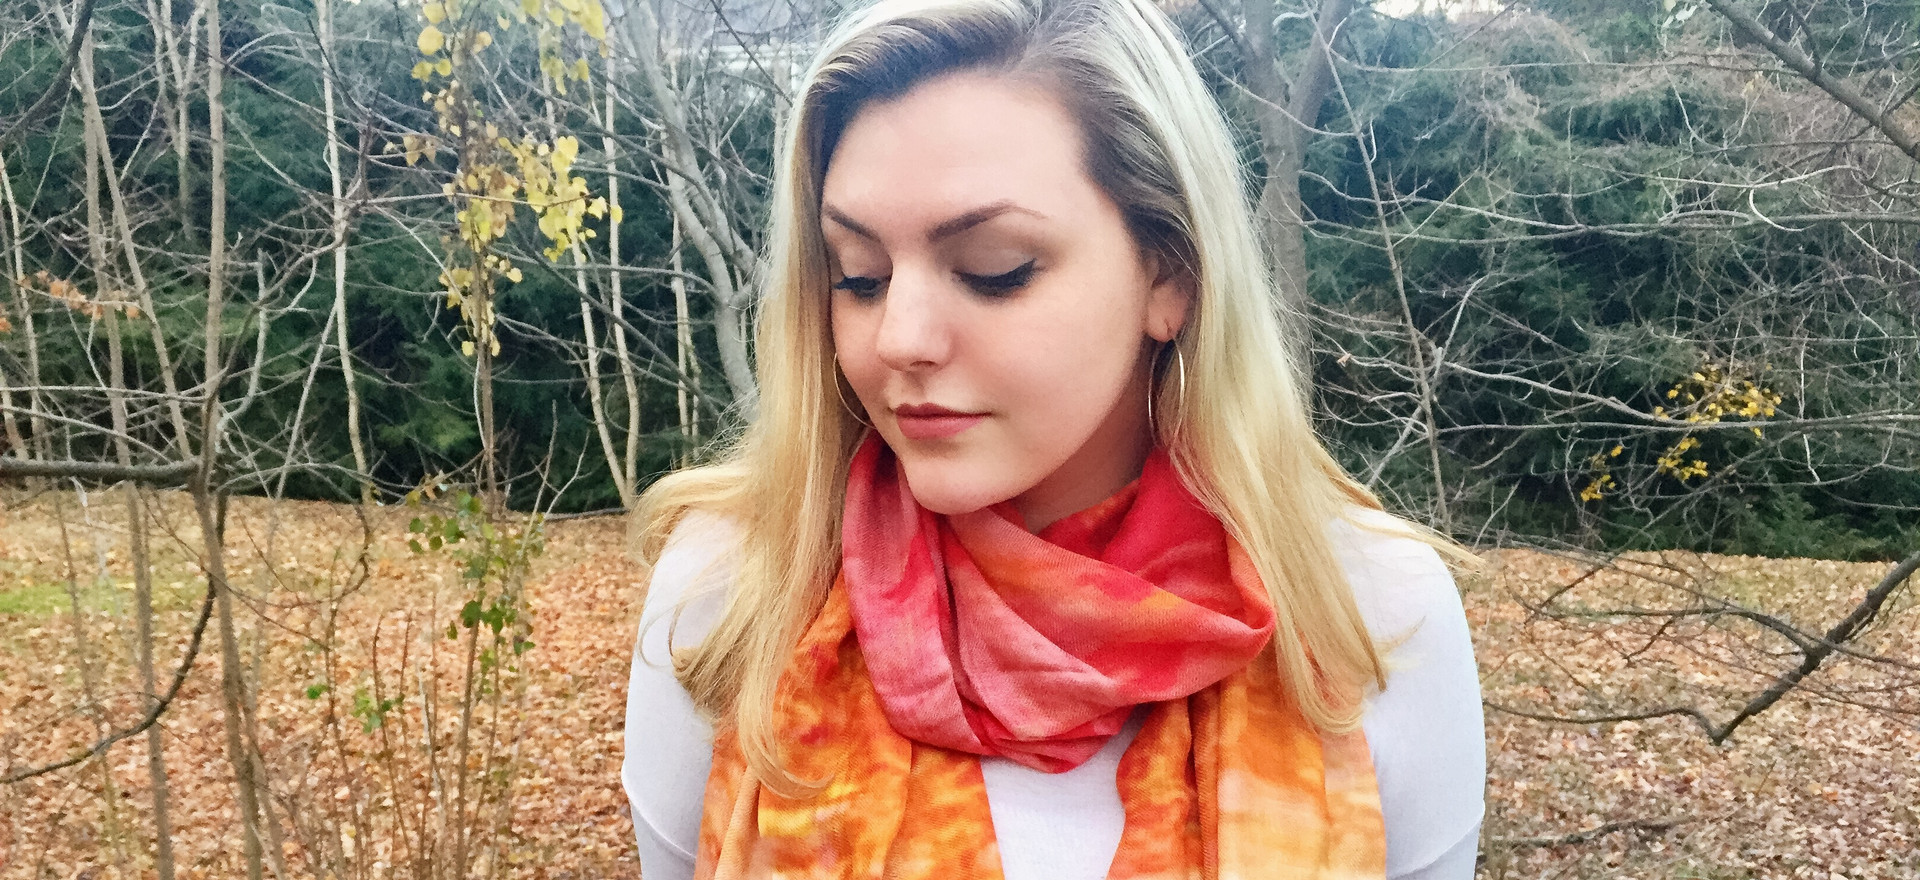 Each scarf has the softest cotton depicting one of Elizabeth's paintings.